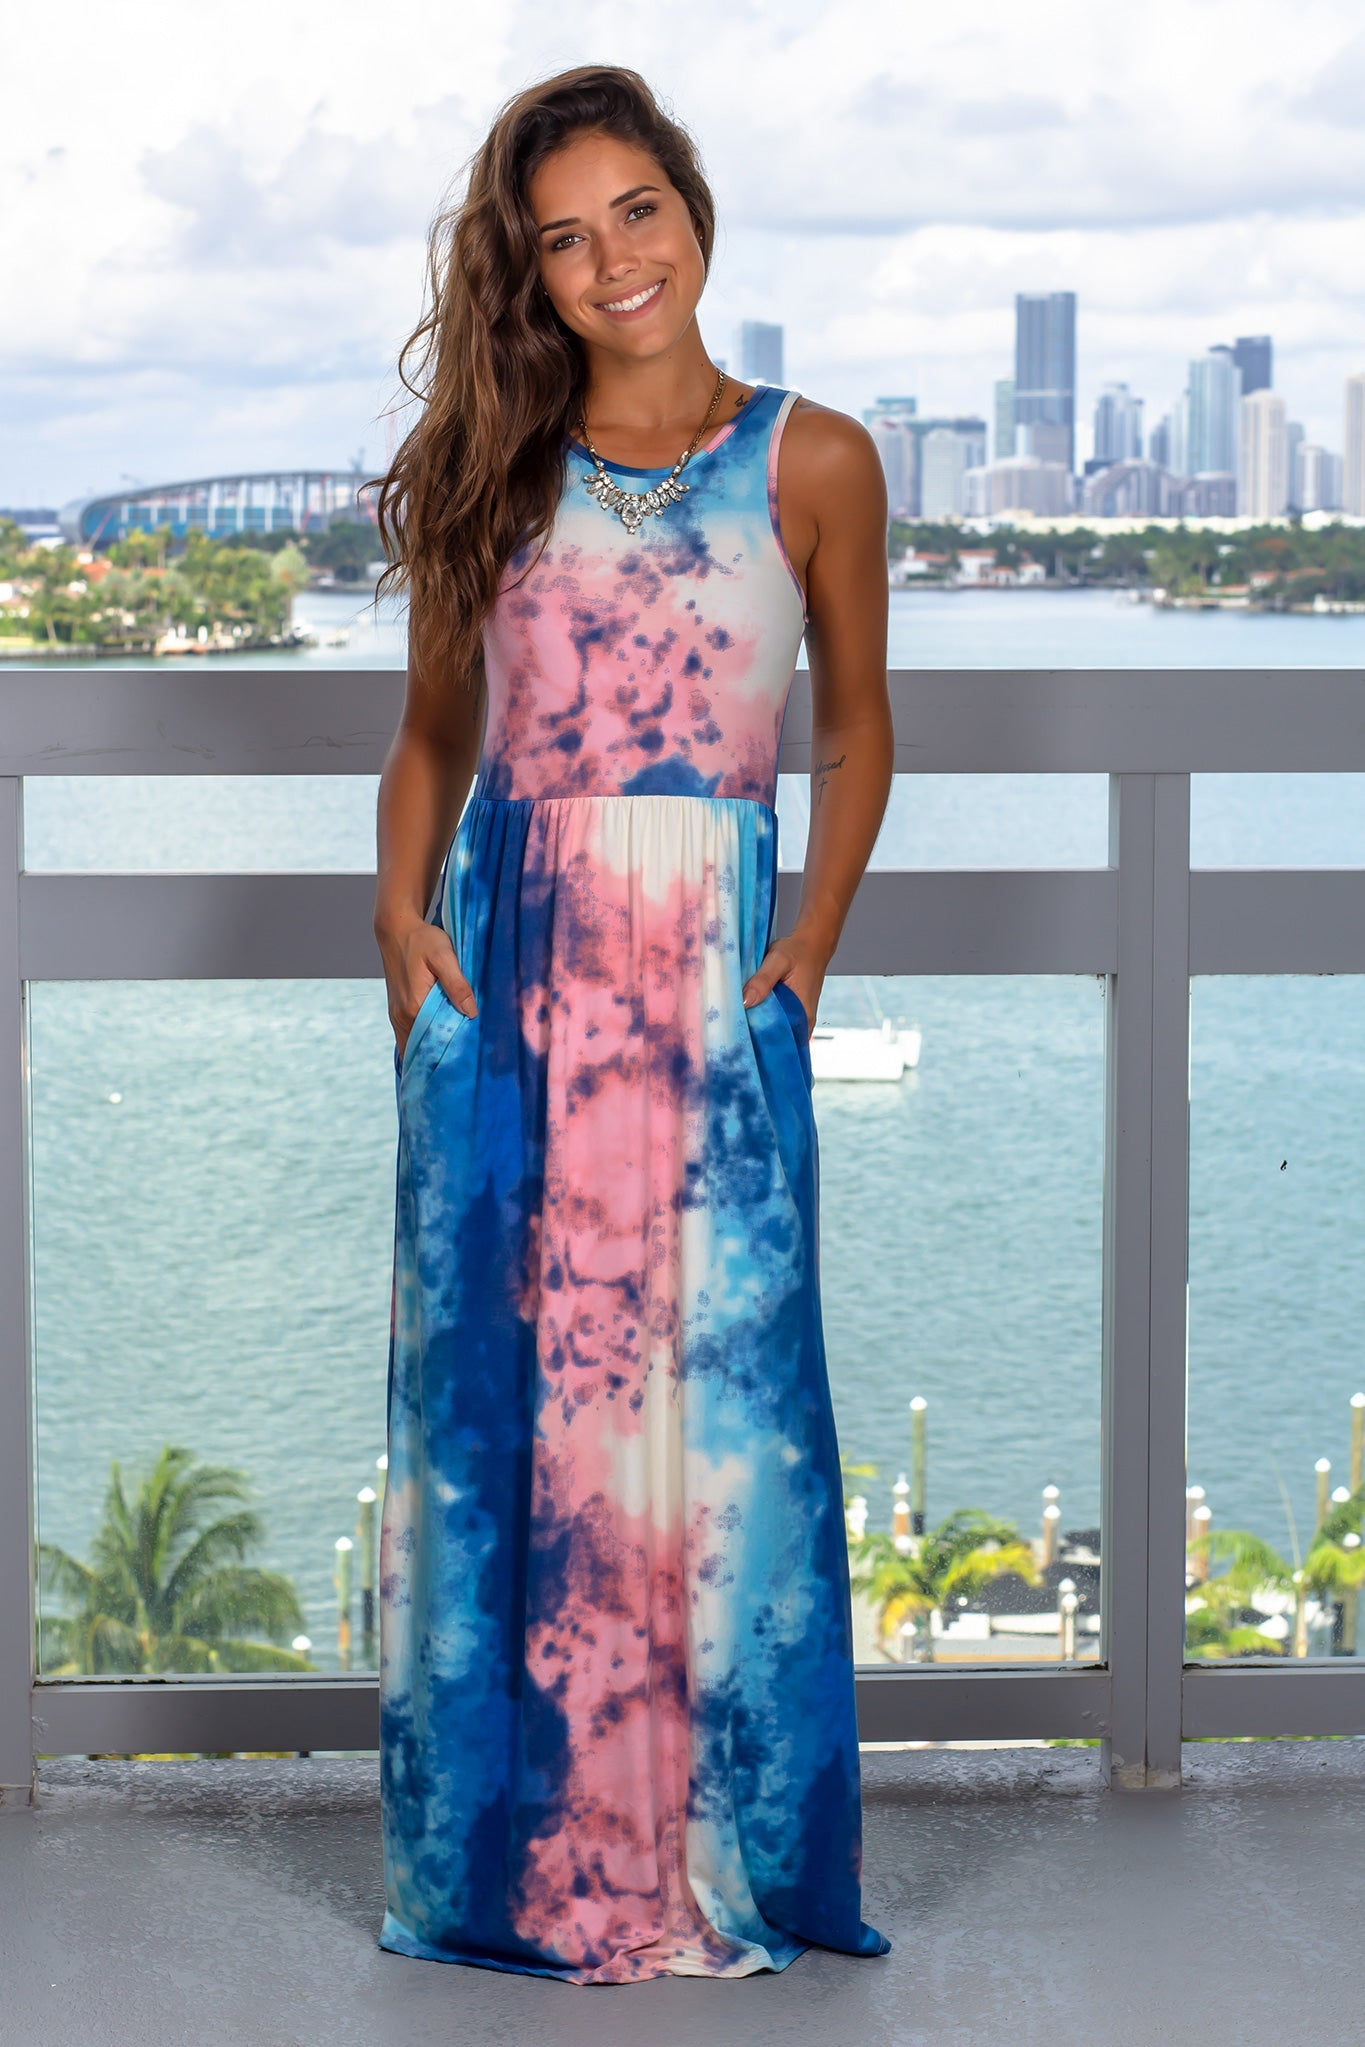 Pink and Blue Tie Dye Maxi Dress